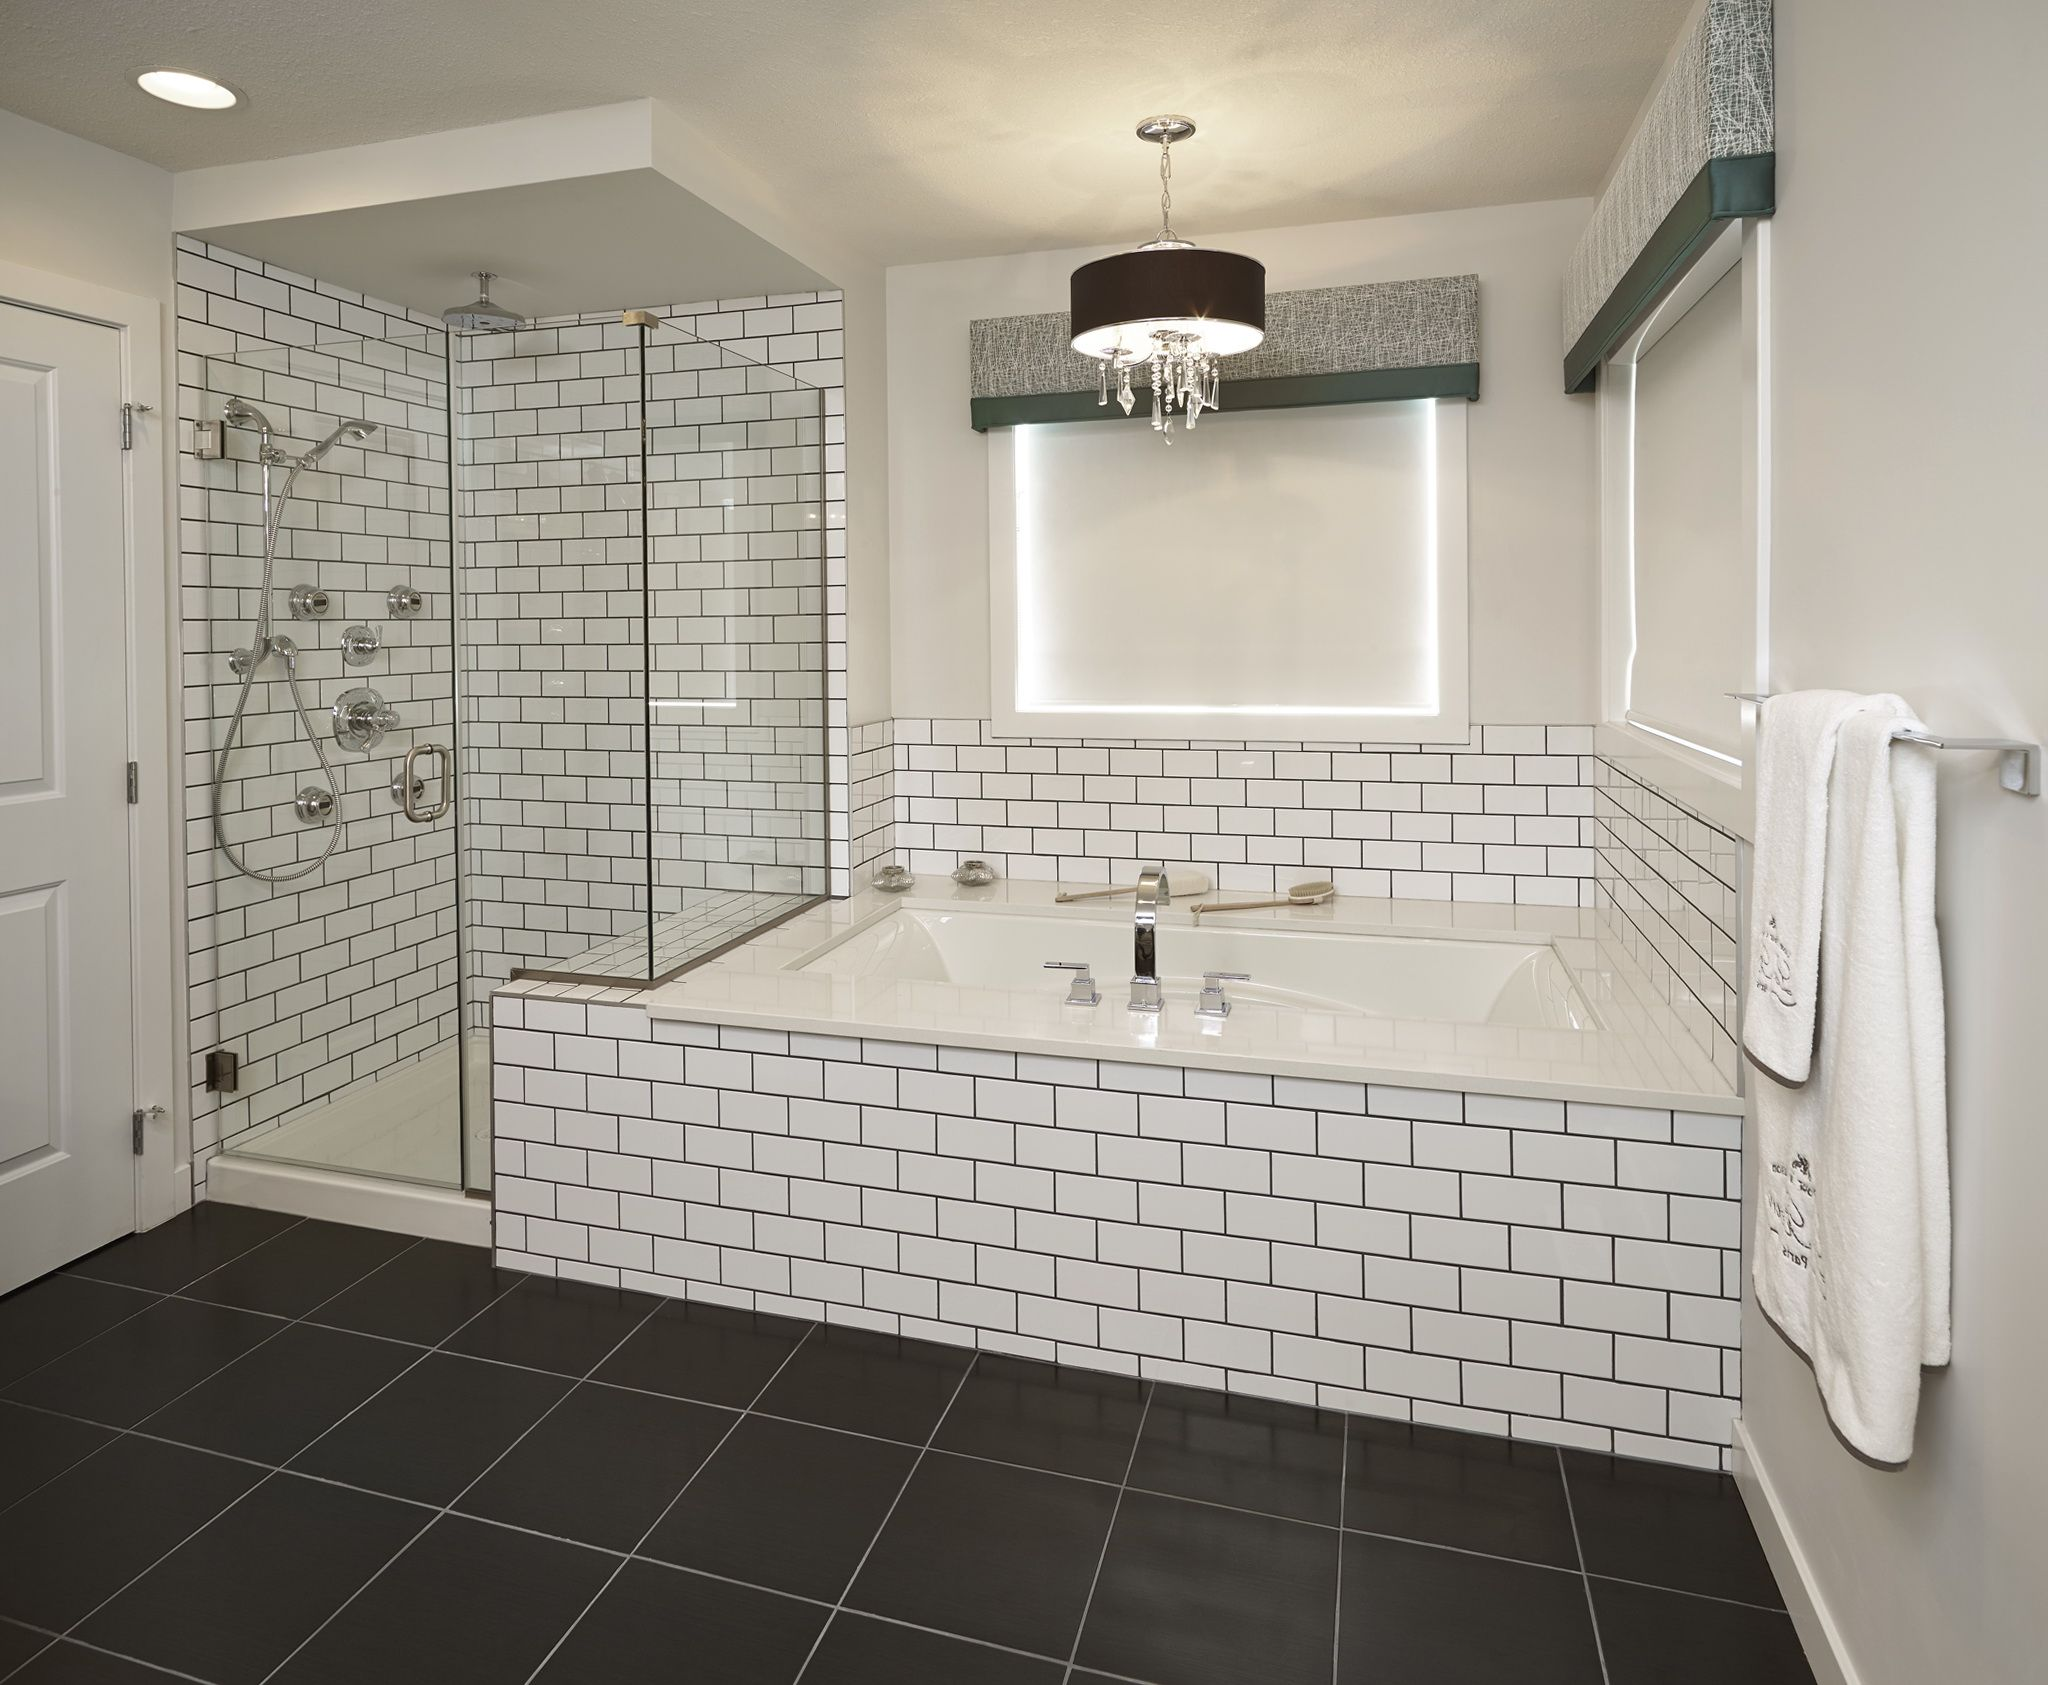 Subway Tile Bathroom Black Grout : Bathroom : Pinterest : Subway tile bathrooms, Tile bathrooms ...